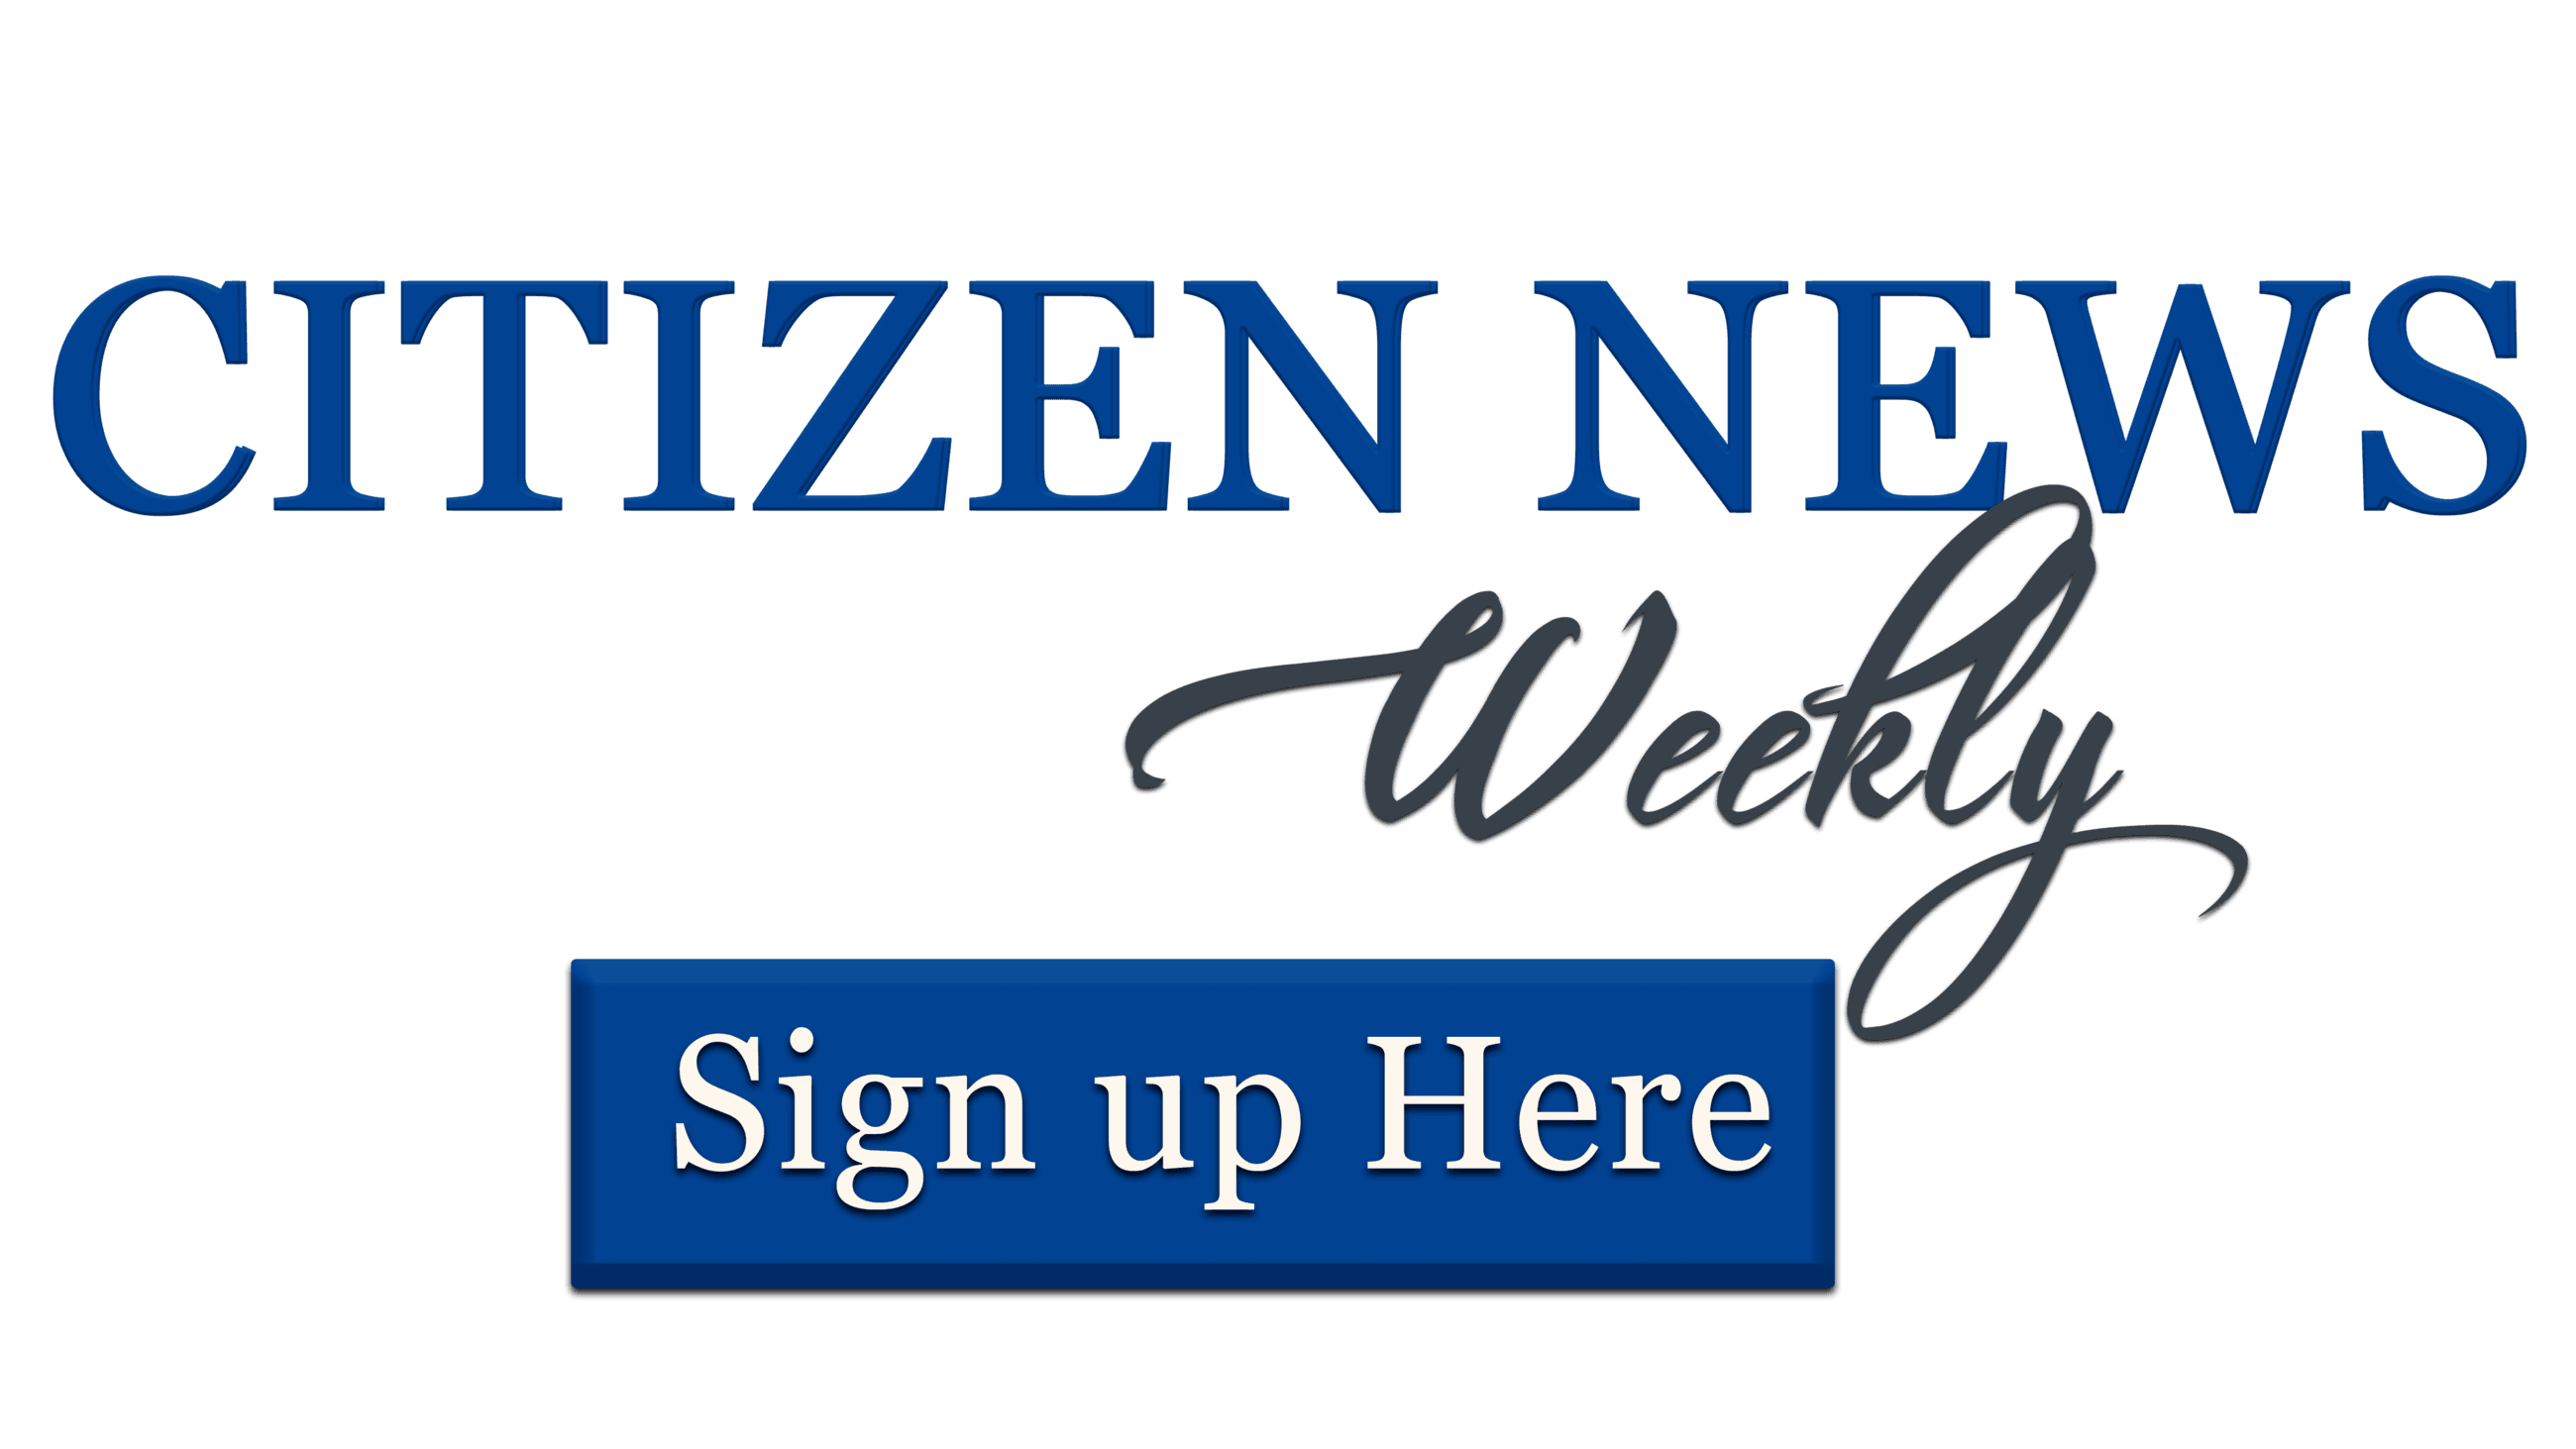 Citizen News Weekly - Sign up here